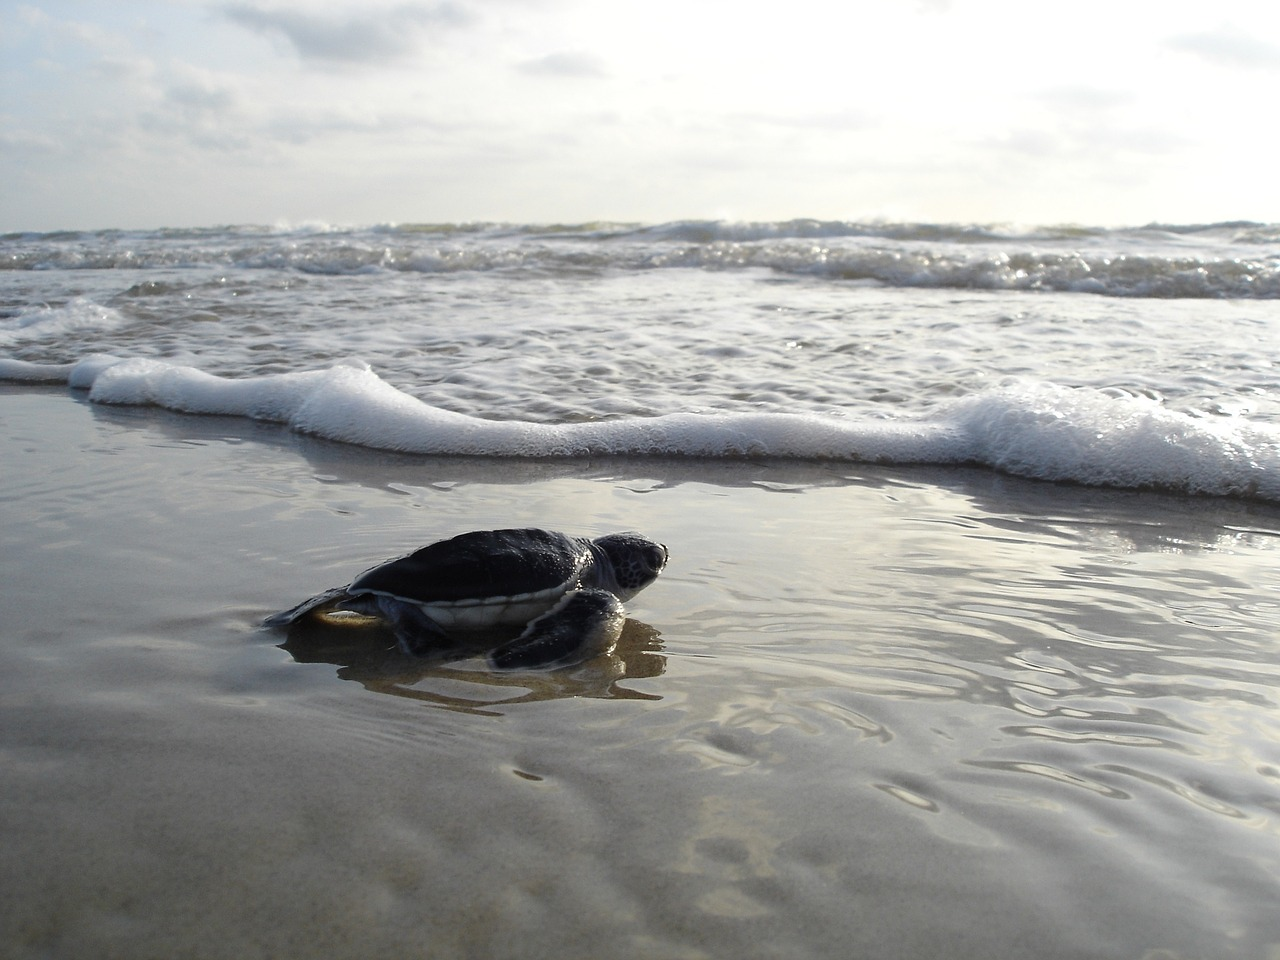 beach cleaning for turtle nesting in cozumel